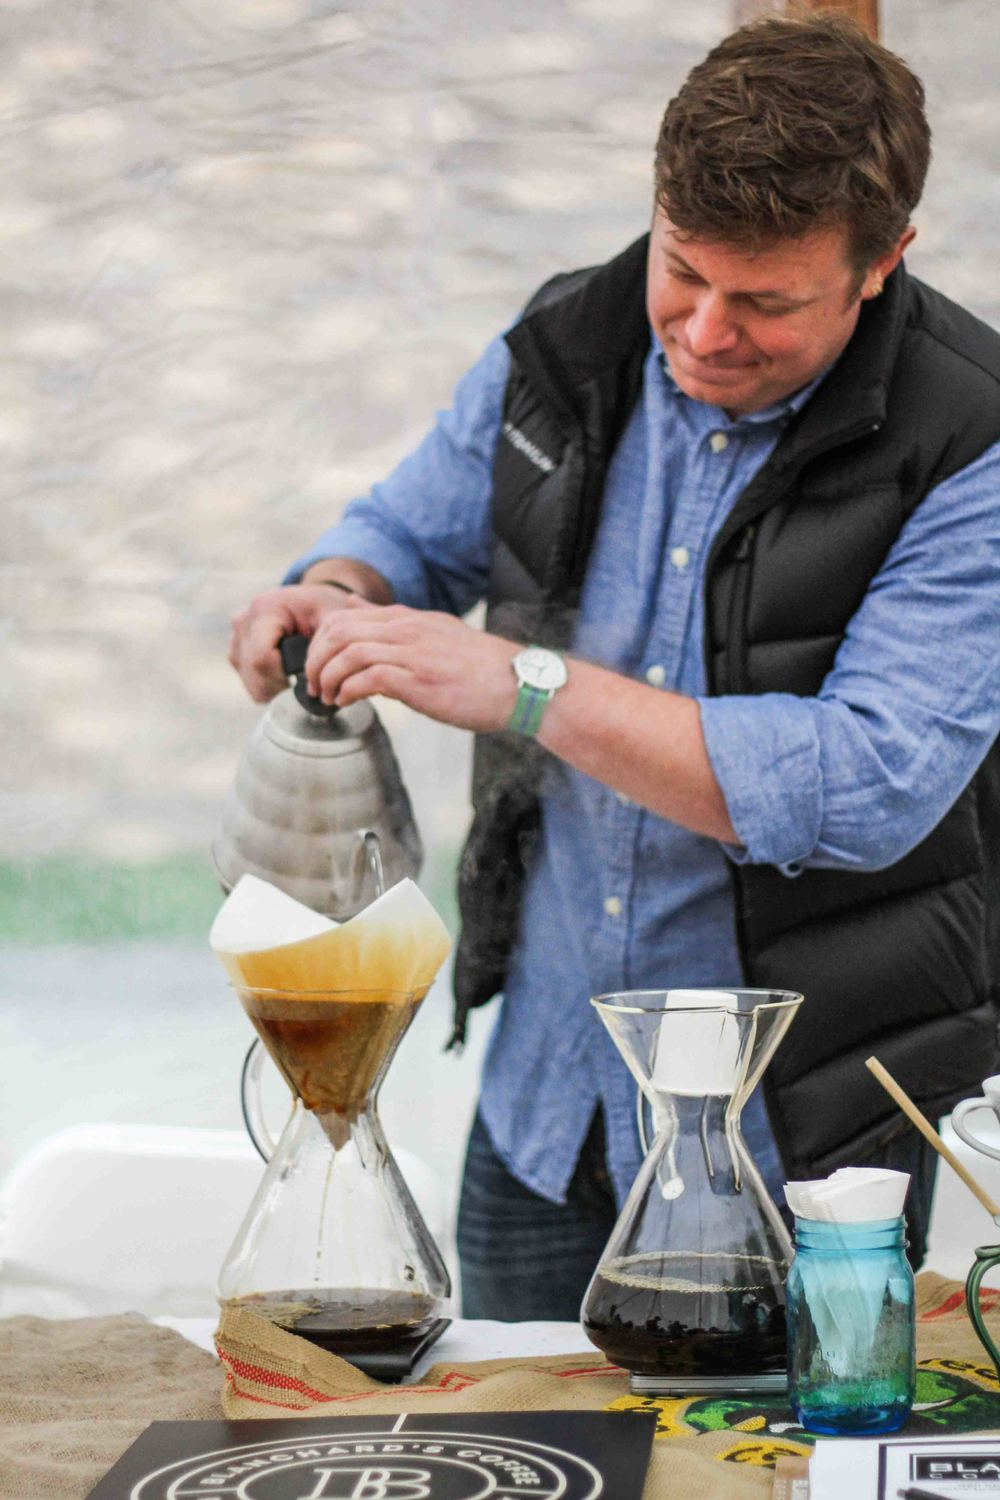 A Blanchard's coffee pour in action